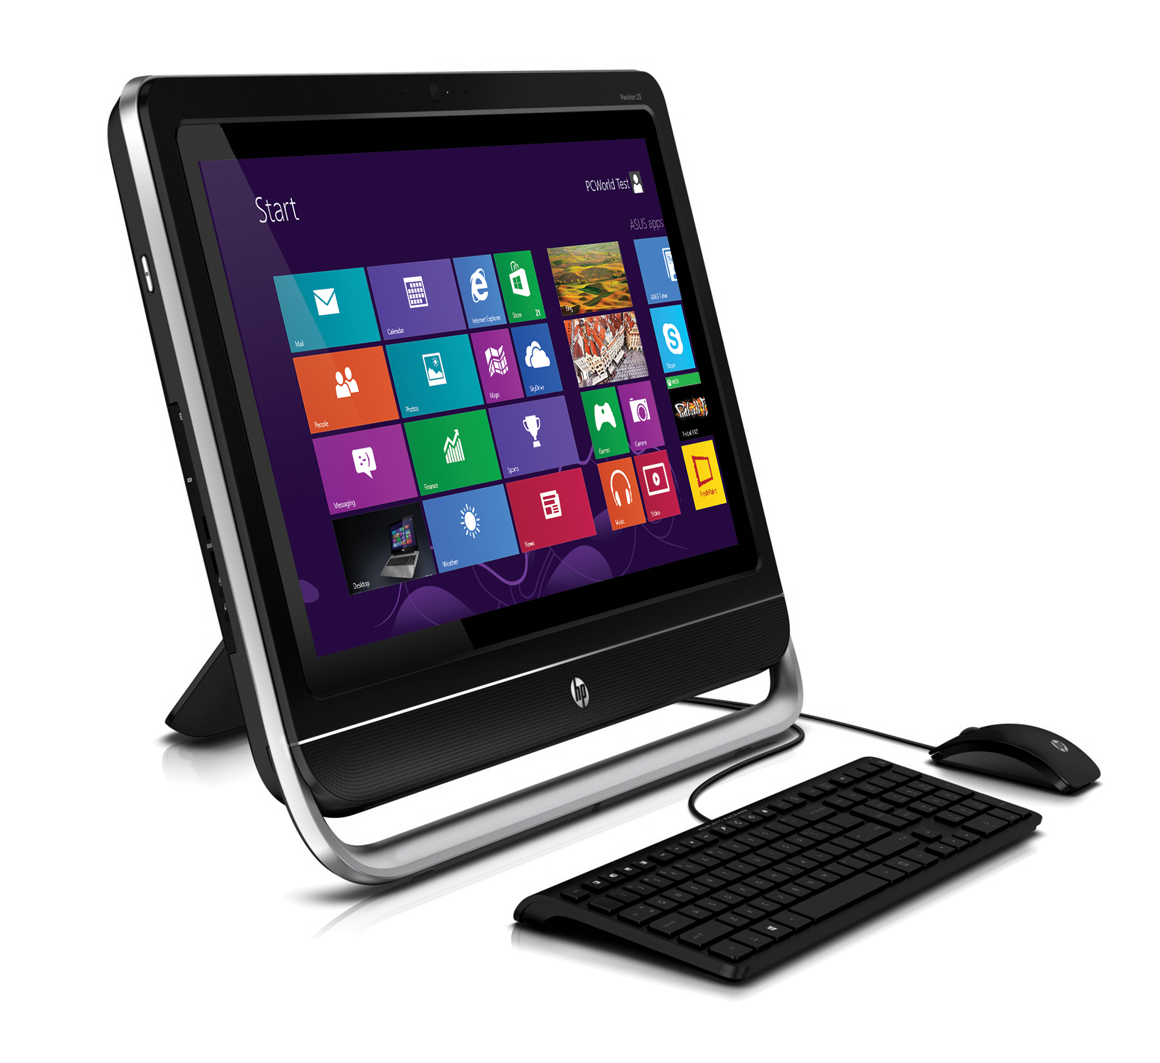 HP's Pavilion TouchSmart is a well-built all-in-one, but a middle-of